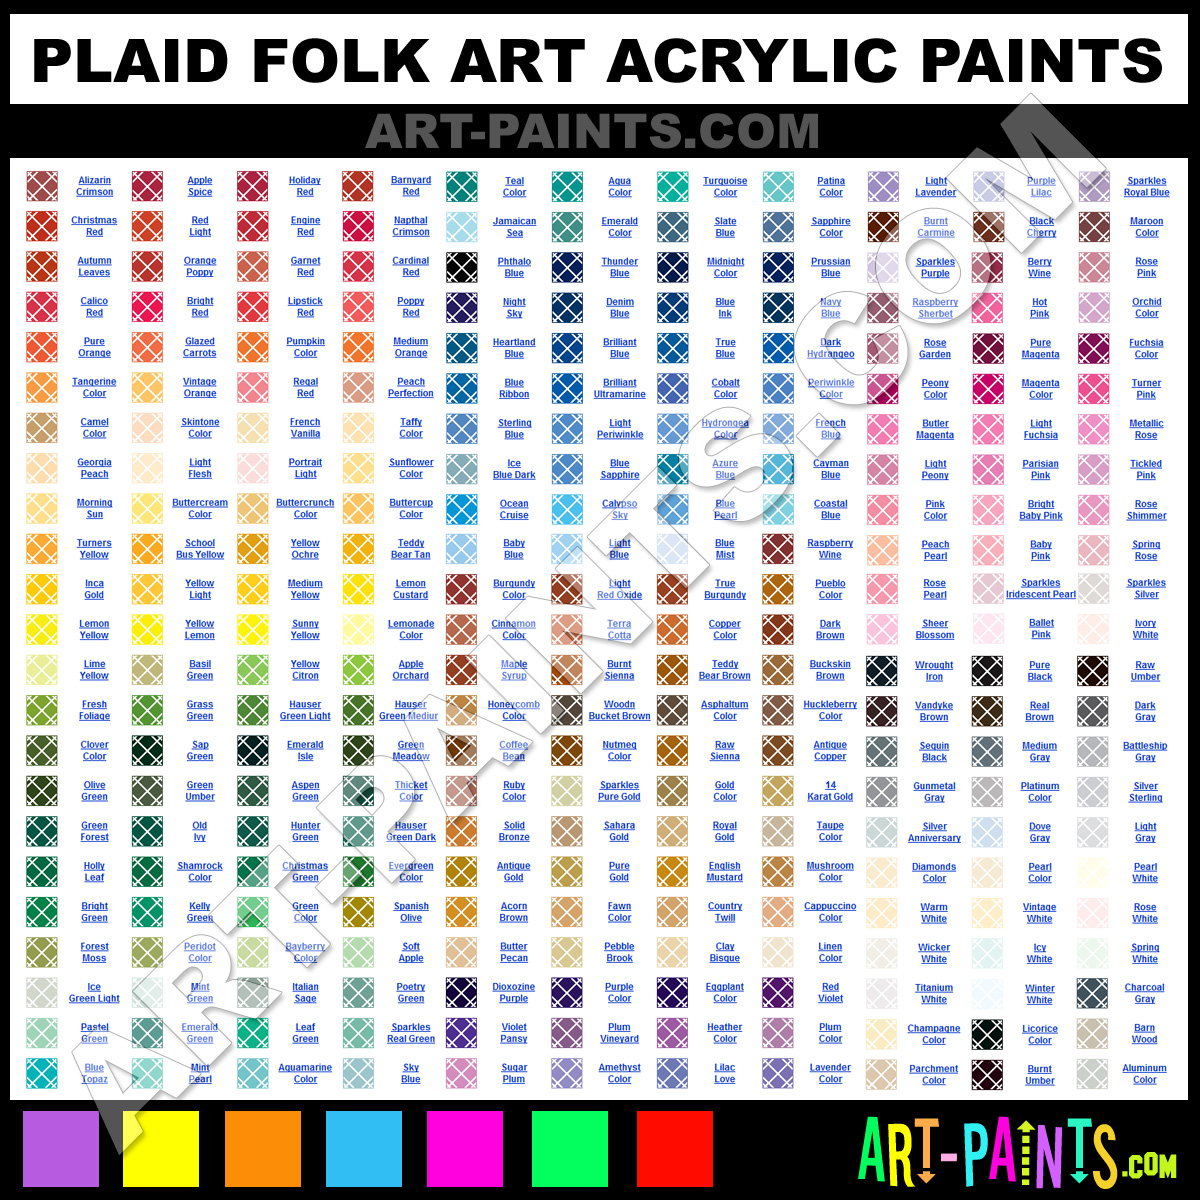 Plaid acrylics plaid folk art paints